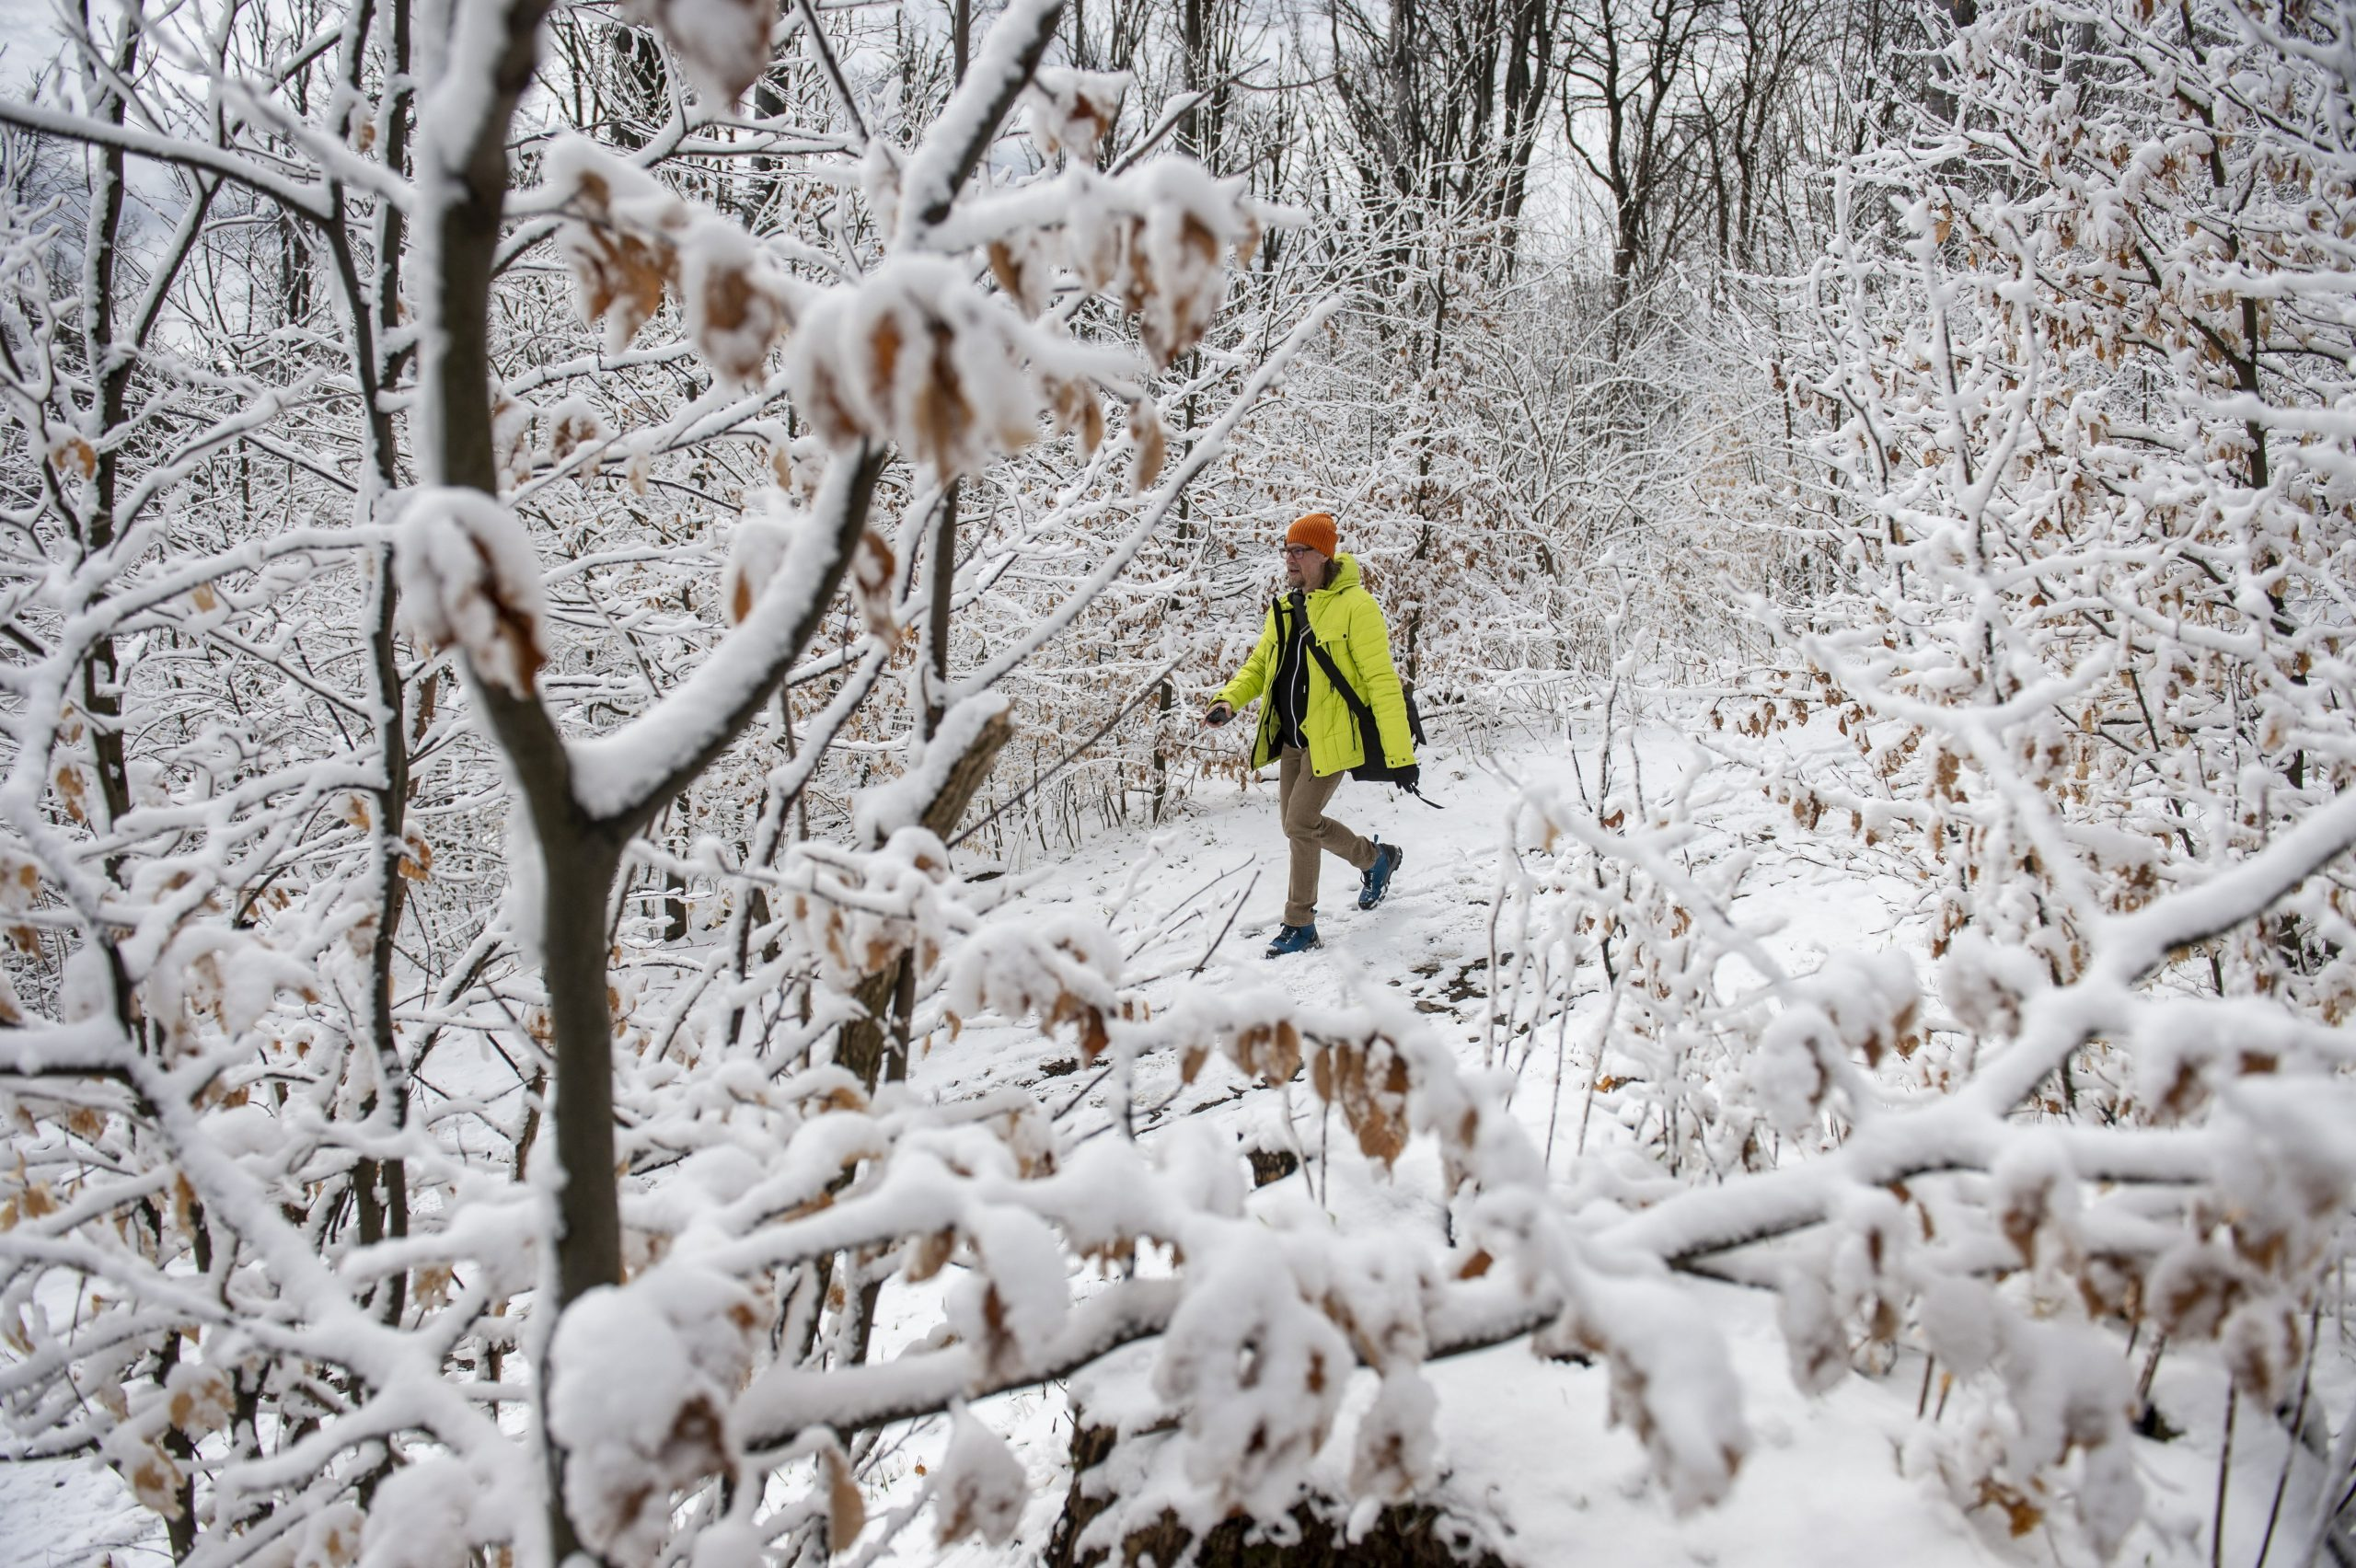 Photos of Hungary's Snowy Winter Wonderland... In April